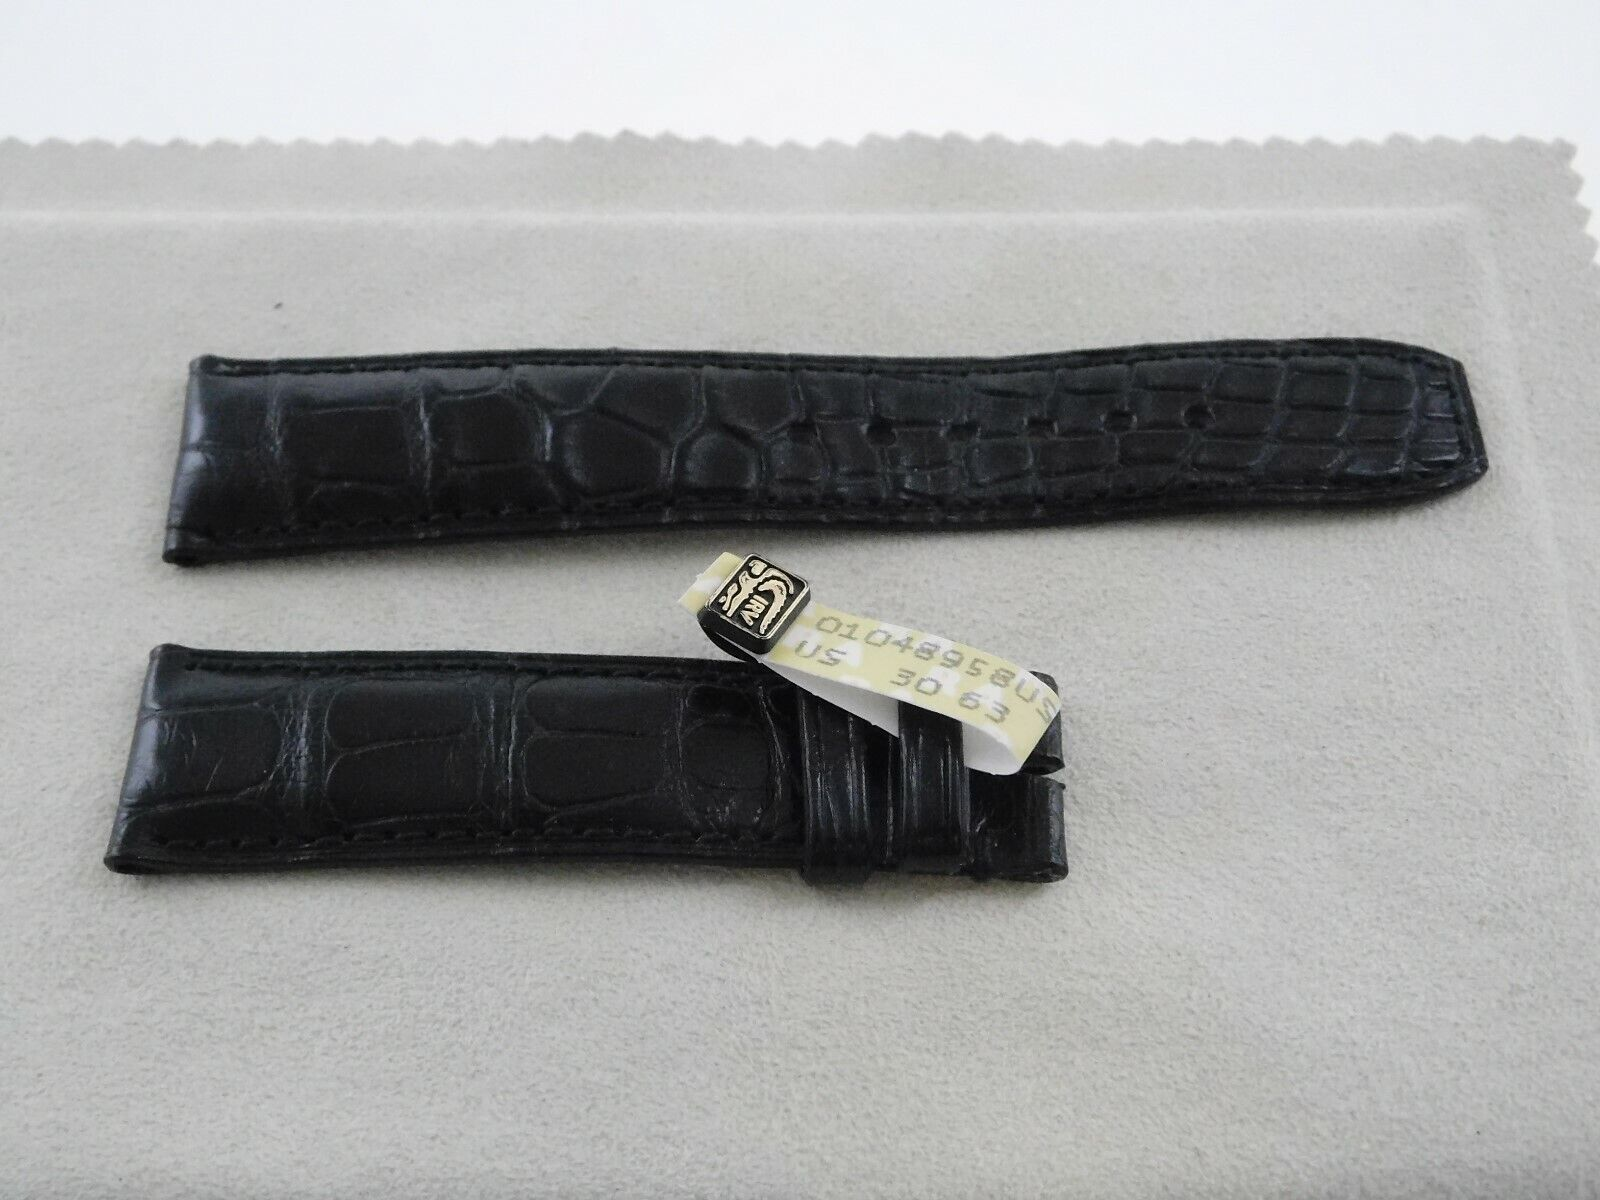 Neu  Baume & Mercier Original echt Louisiana ALLIGATOR Armband schwarz 20-18mm